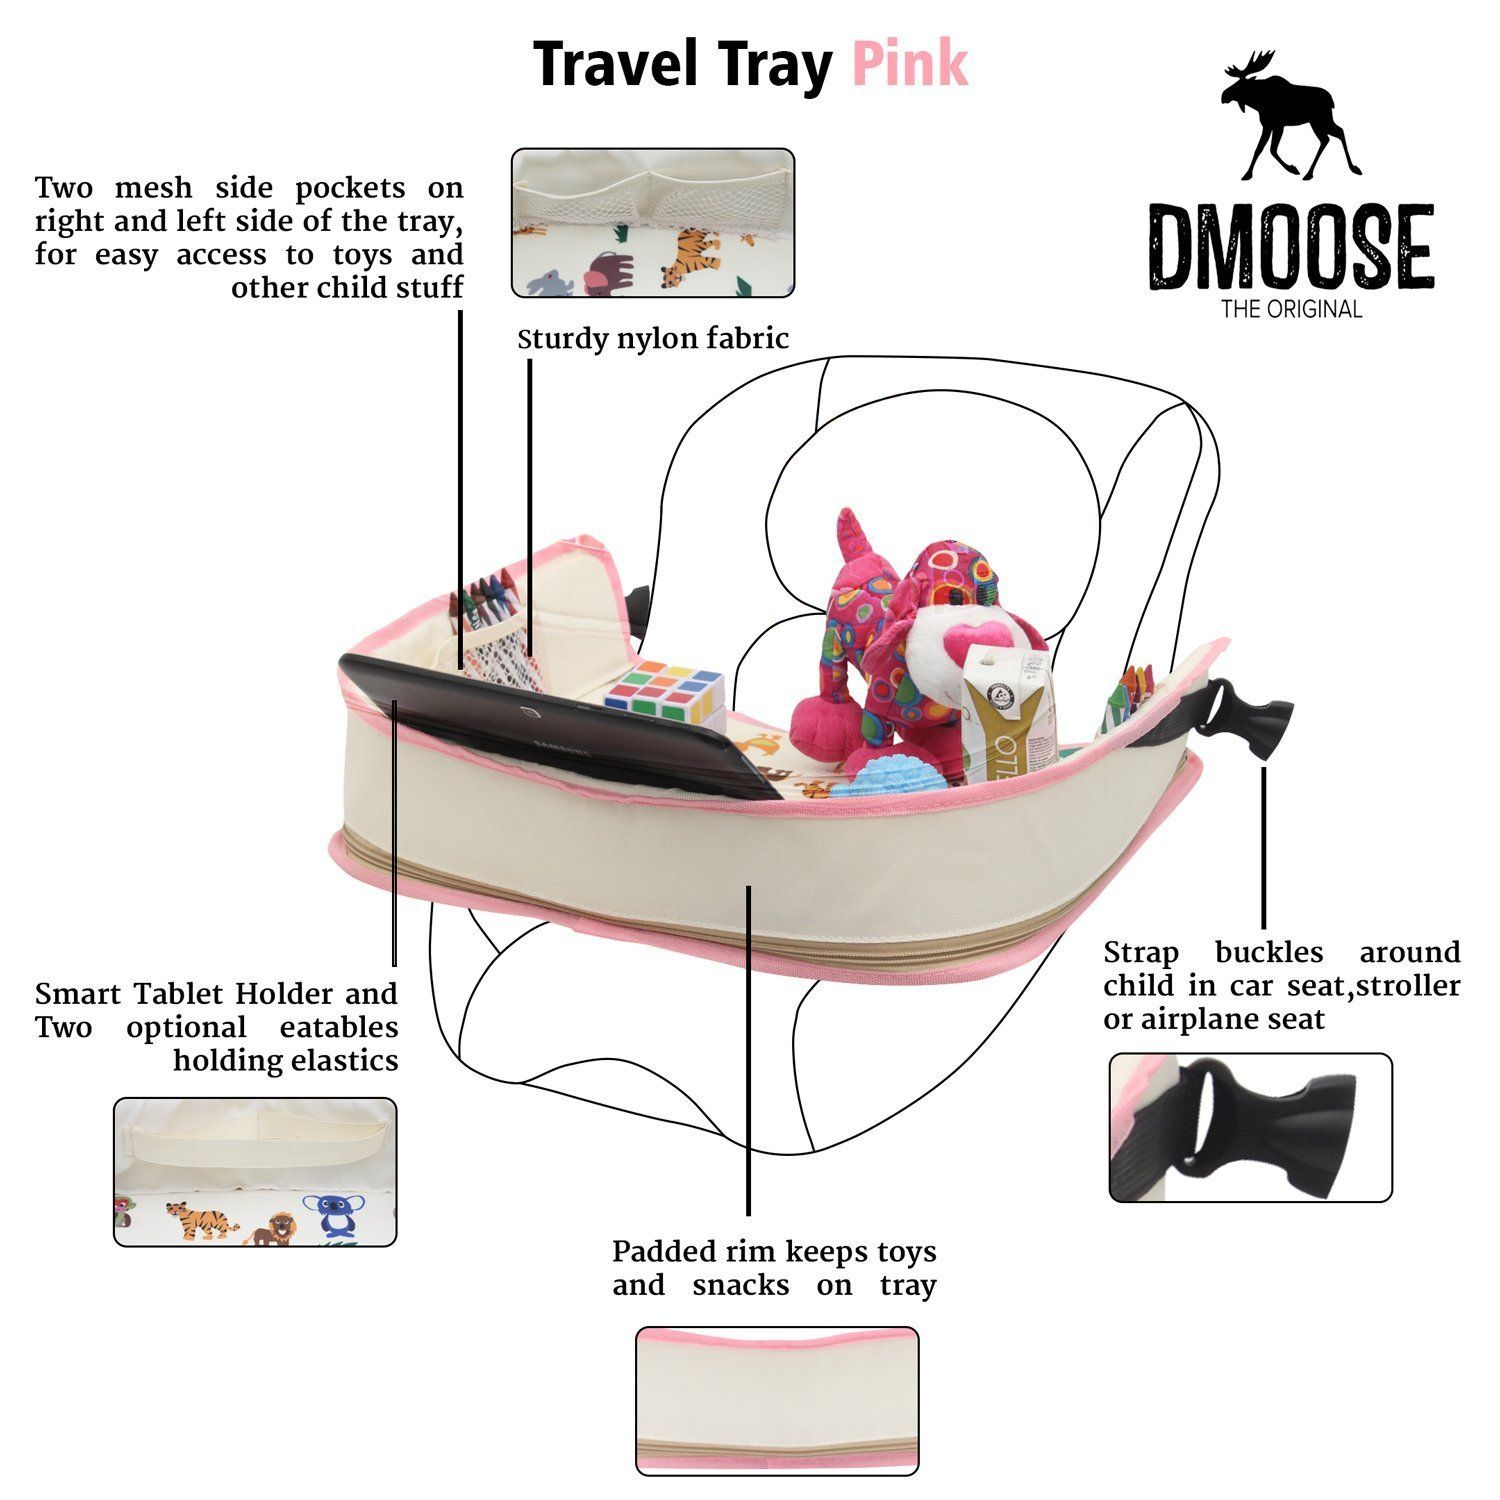 Toddler Car Seat Travel Tray by DMoose 16Inchby13Inch â